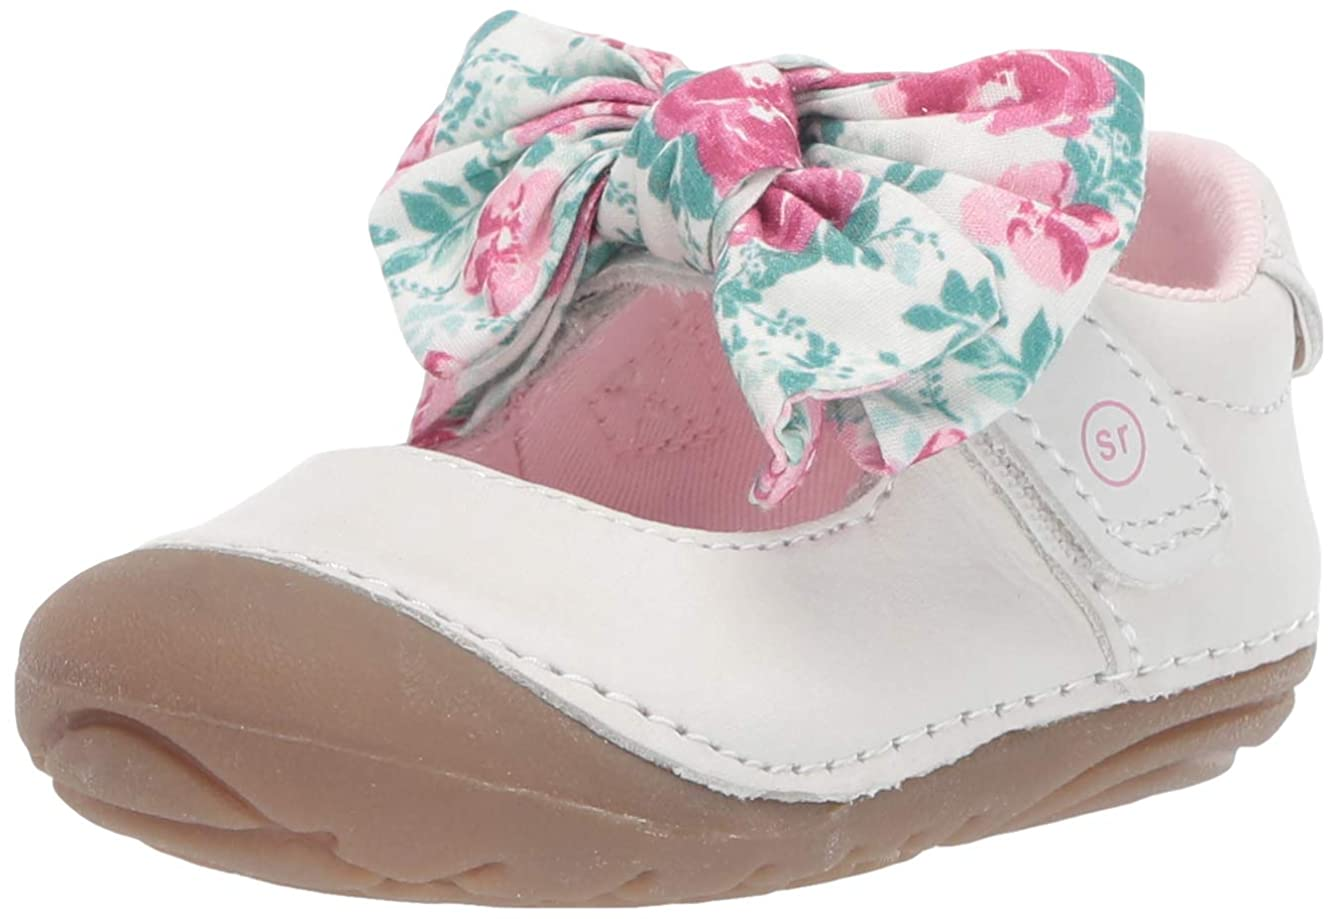 Stride Rite Kids Soft Motion Esme Girl's Casual Mary Jane Flat